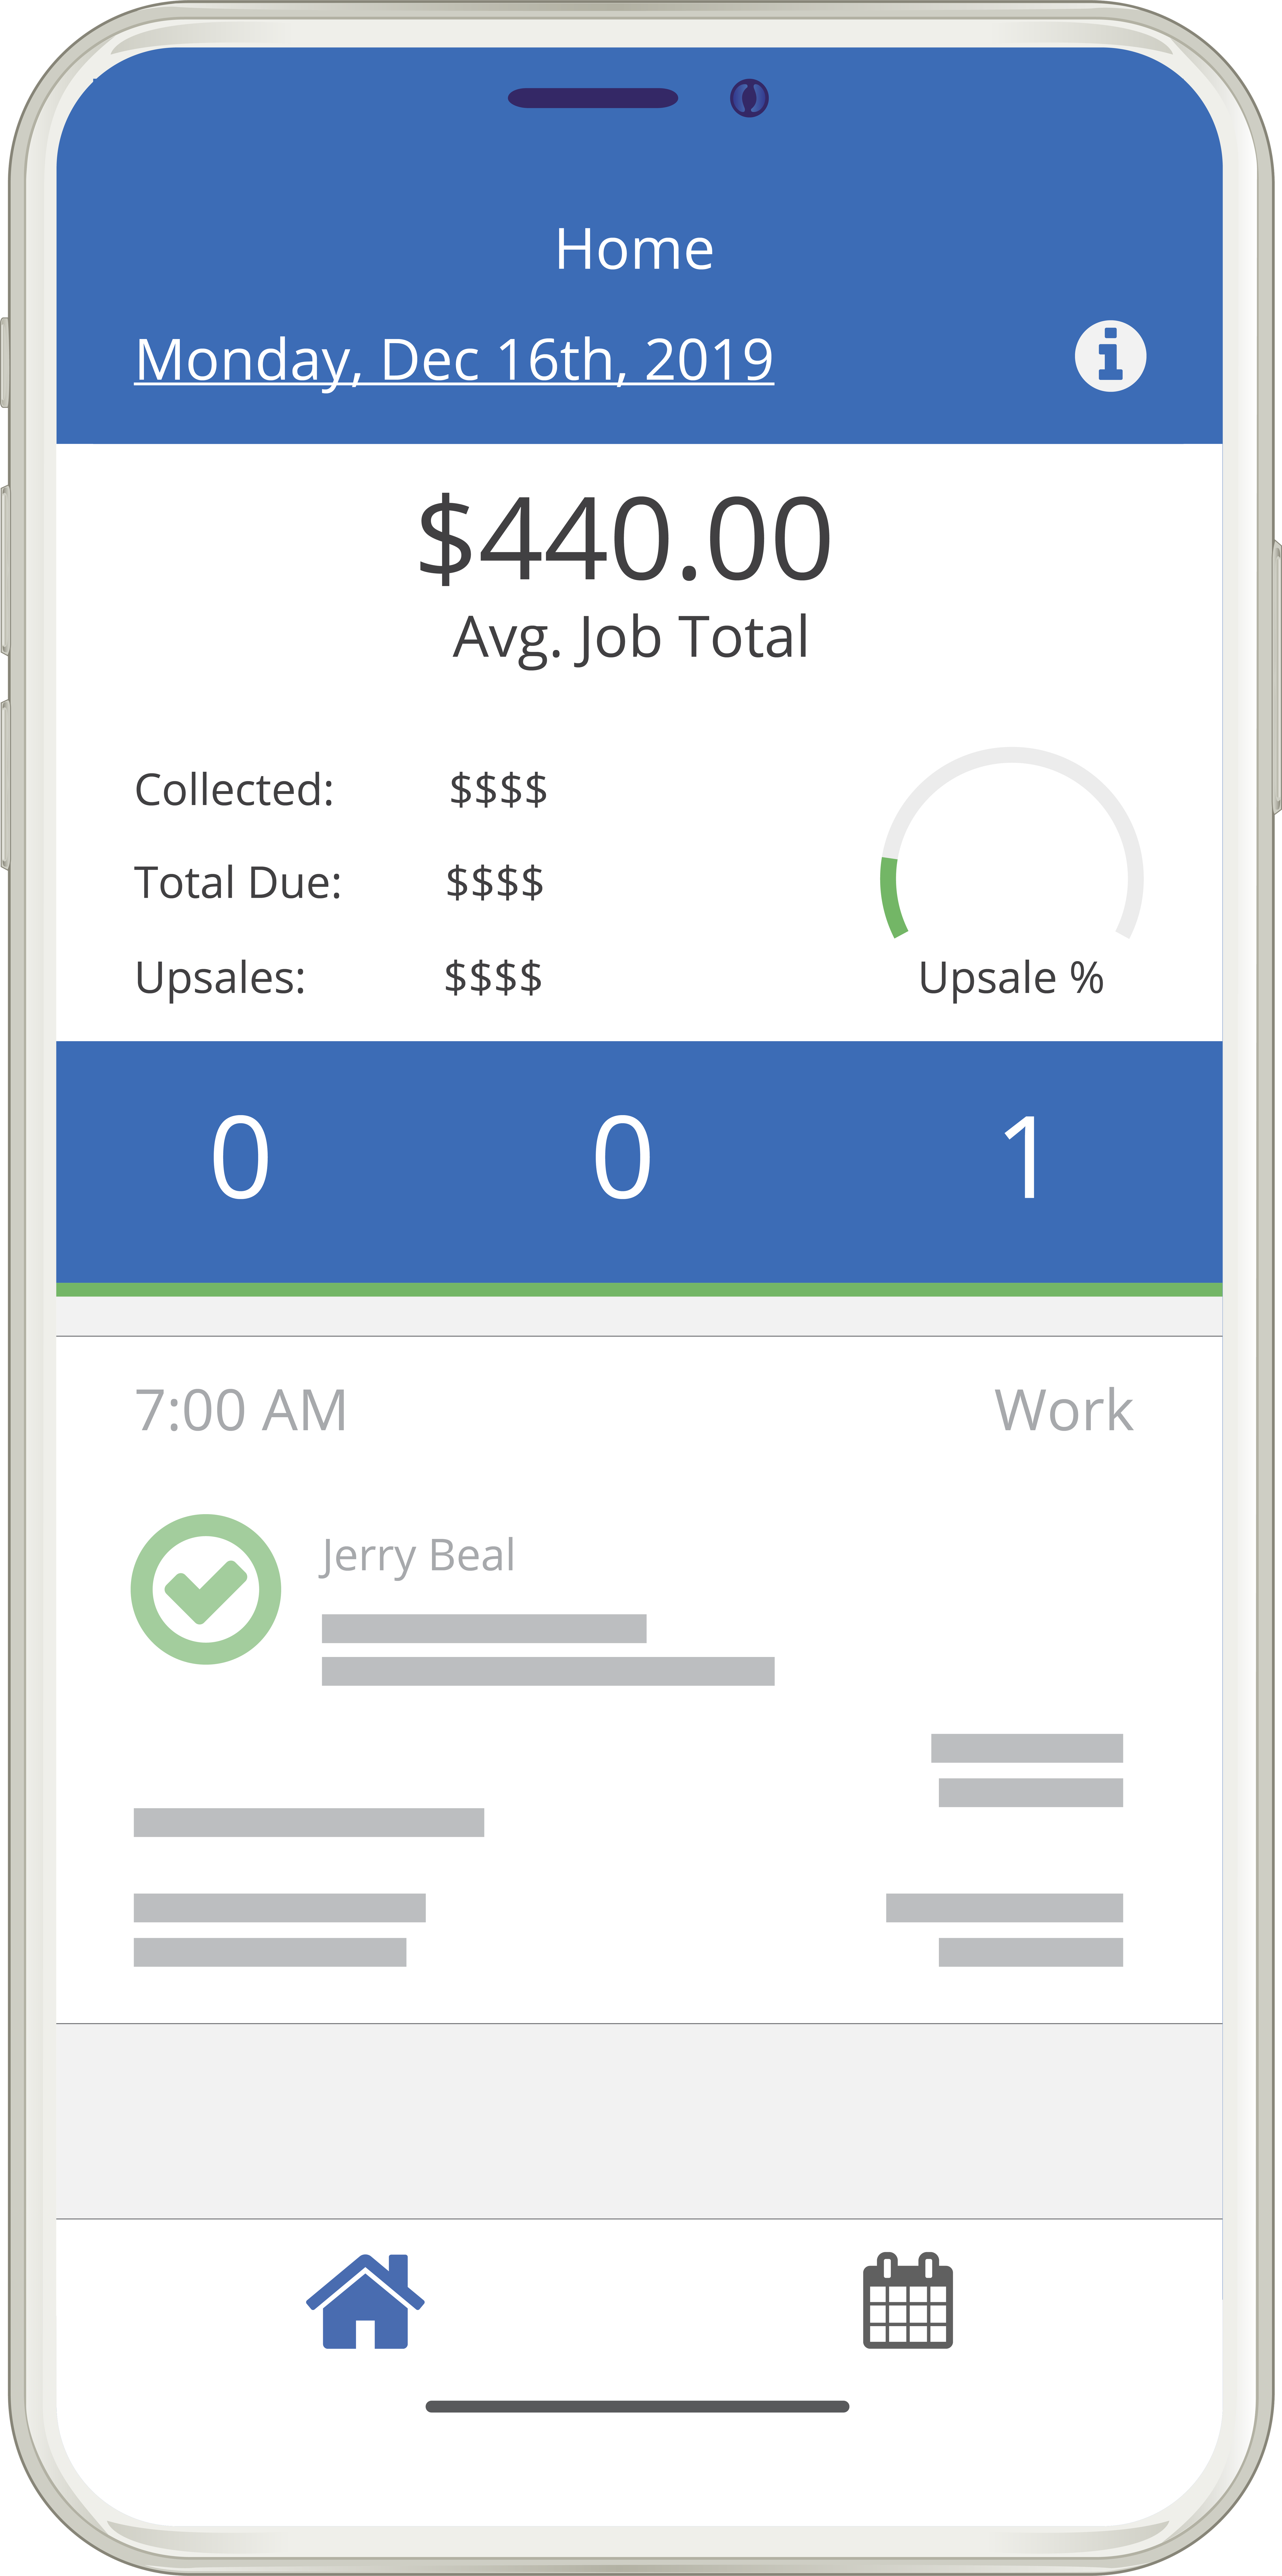 Technician view on the mobile app